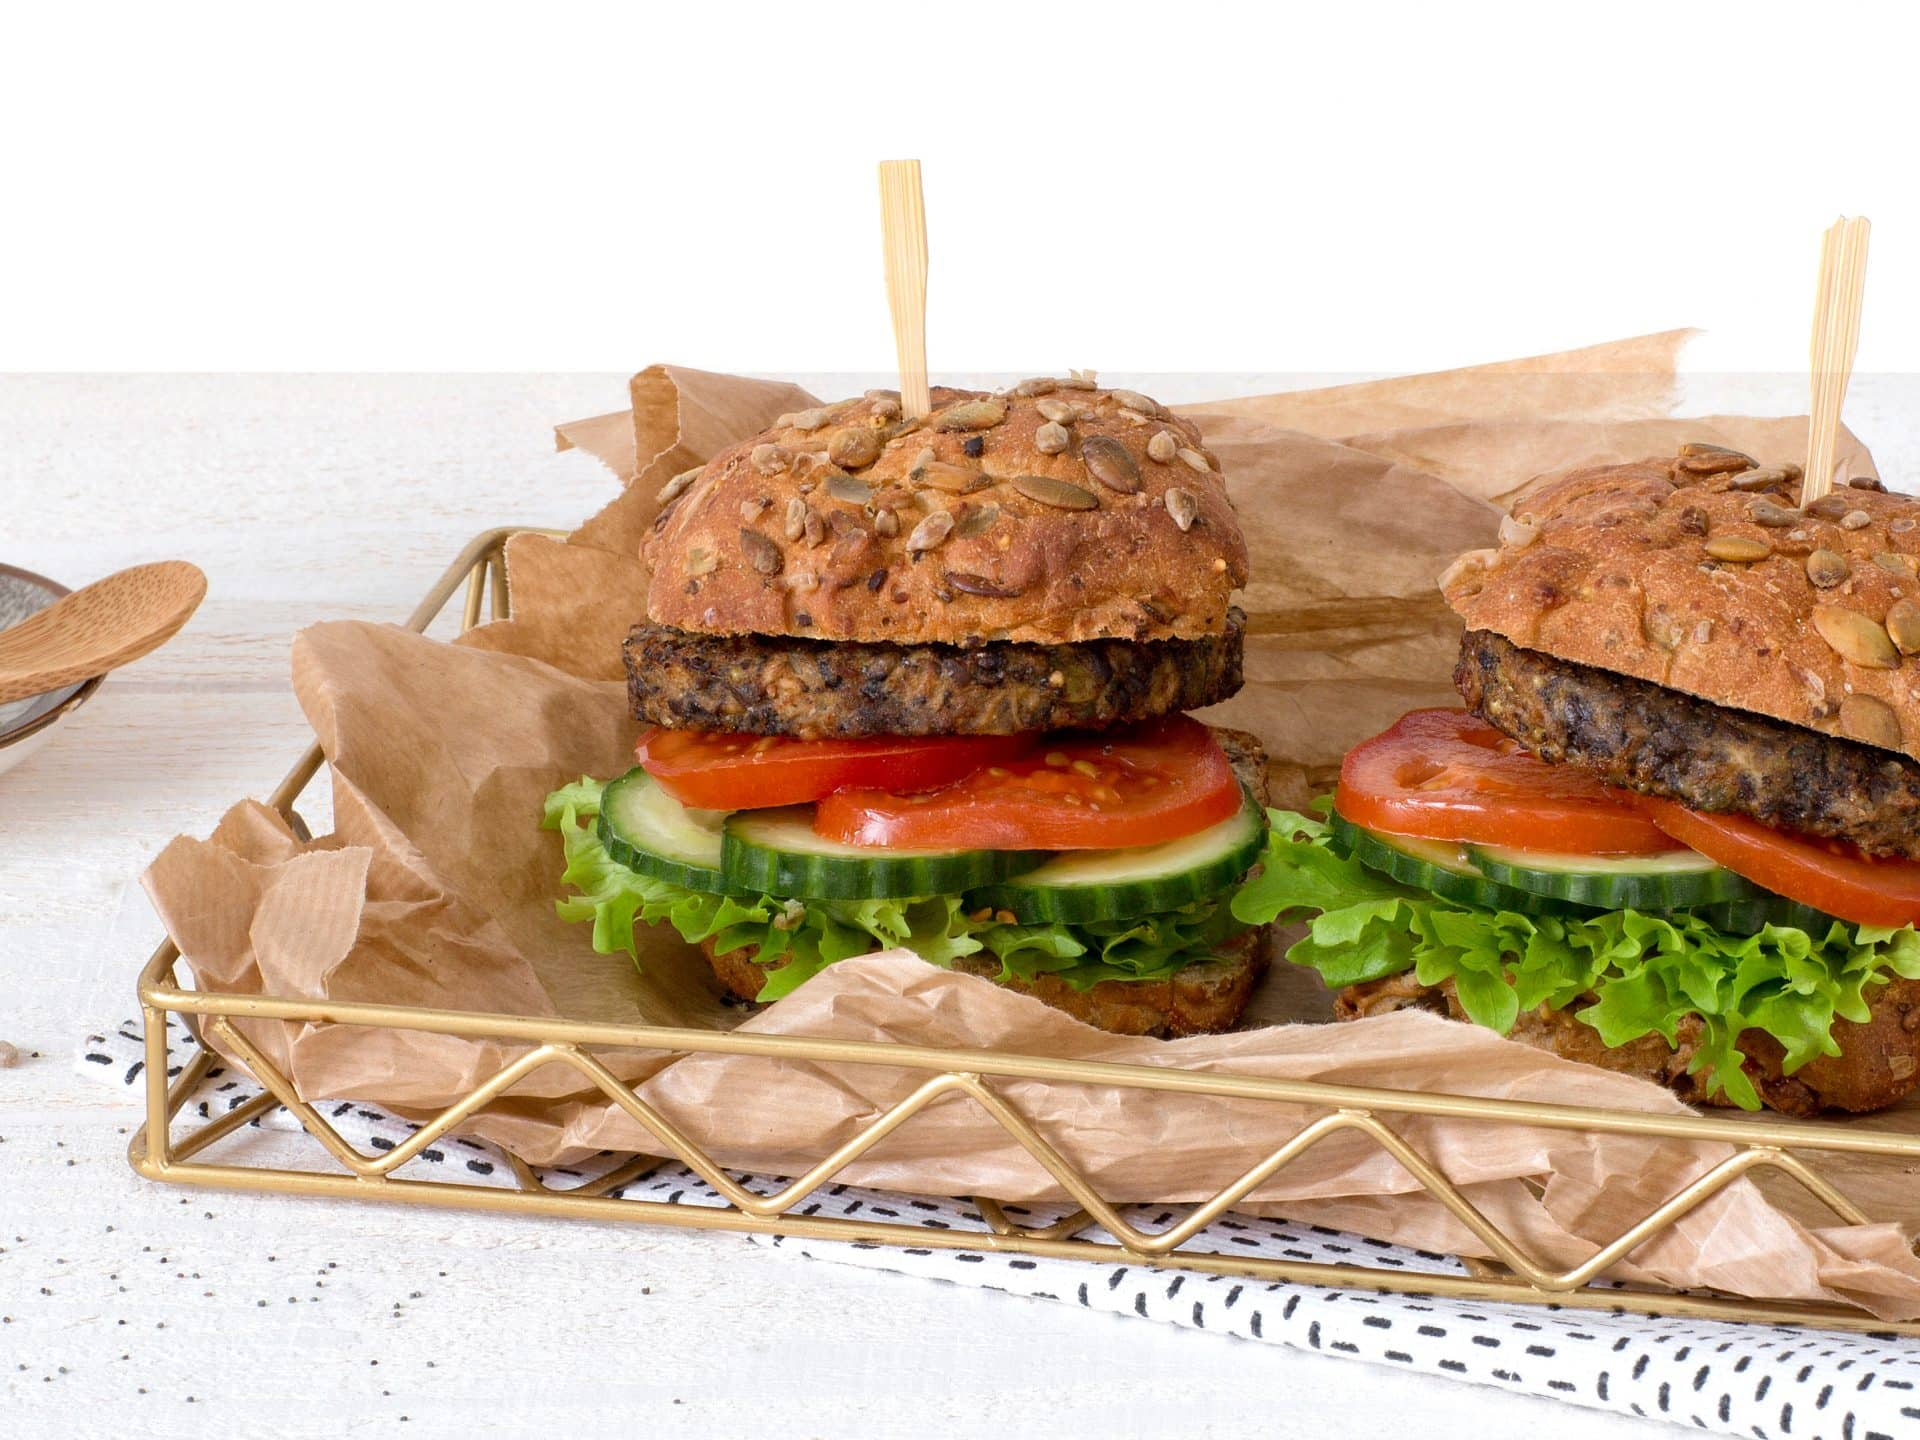 Meat substitute: Vegetarian Seeds Burger